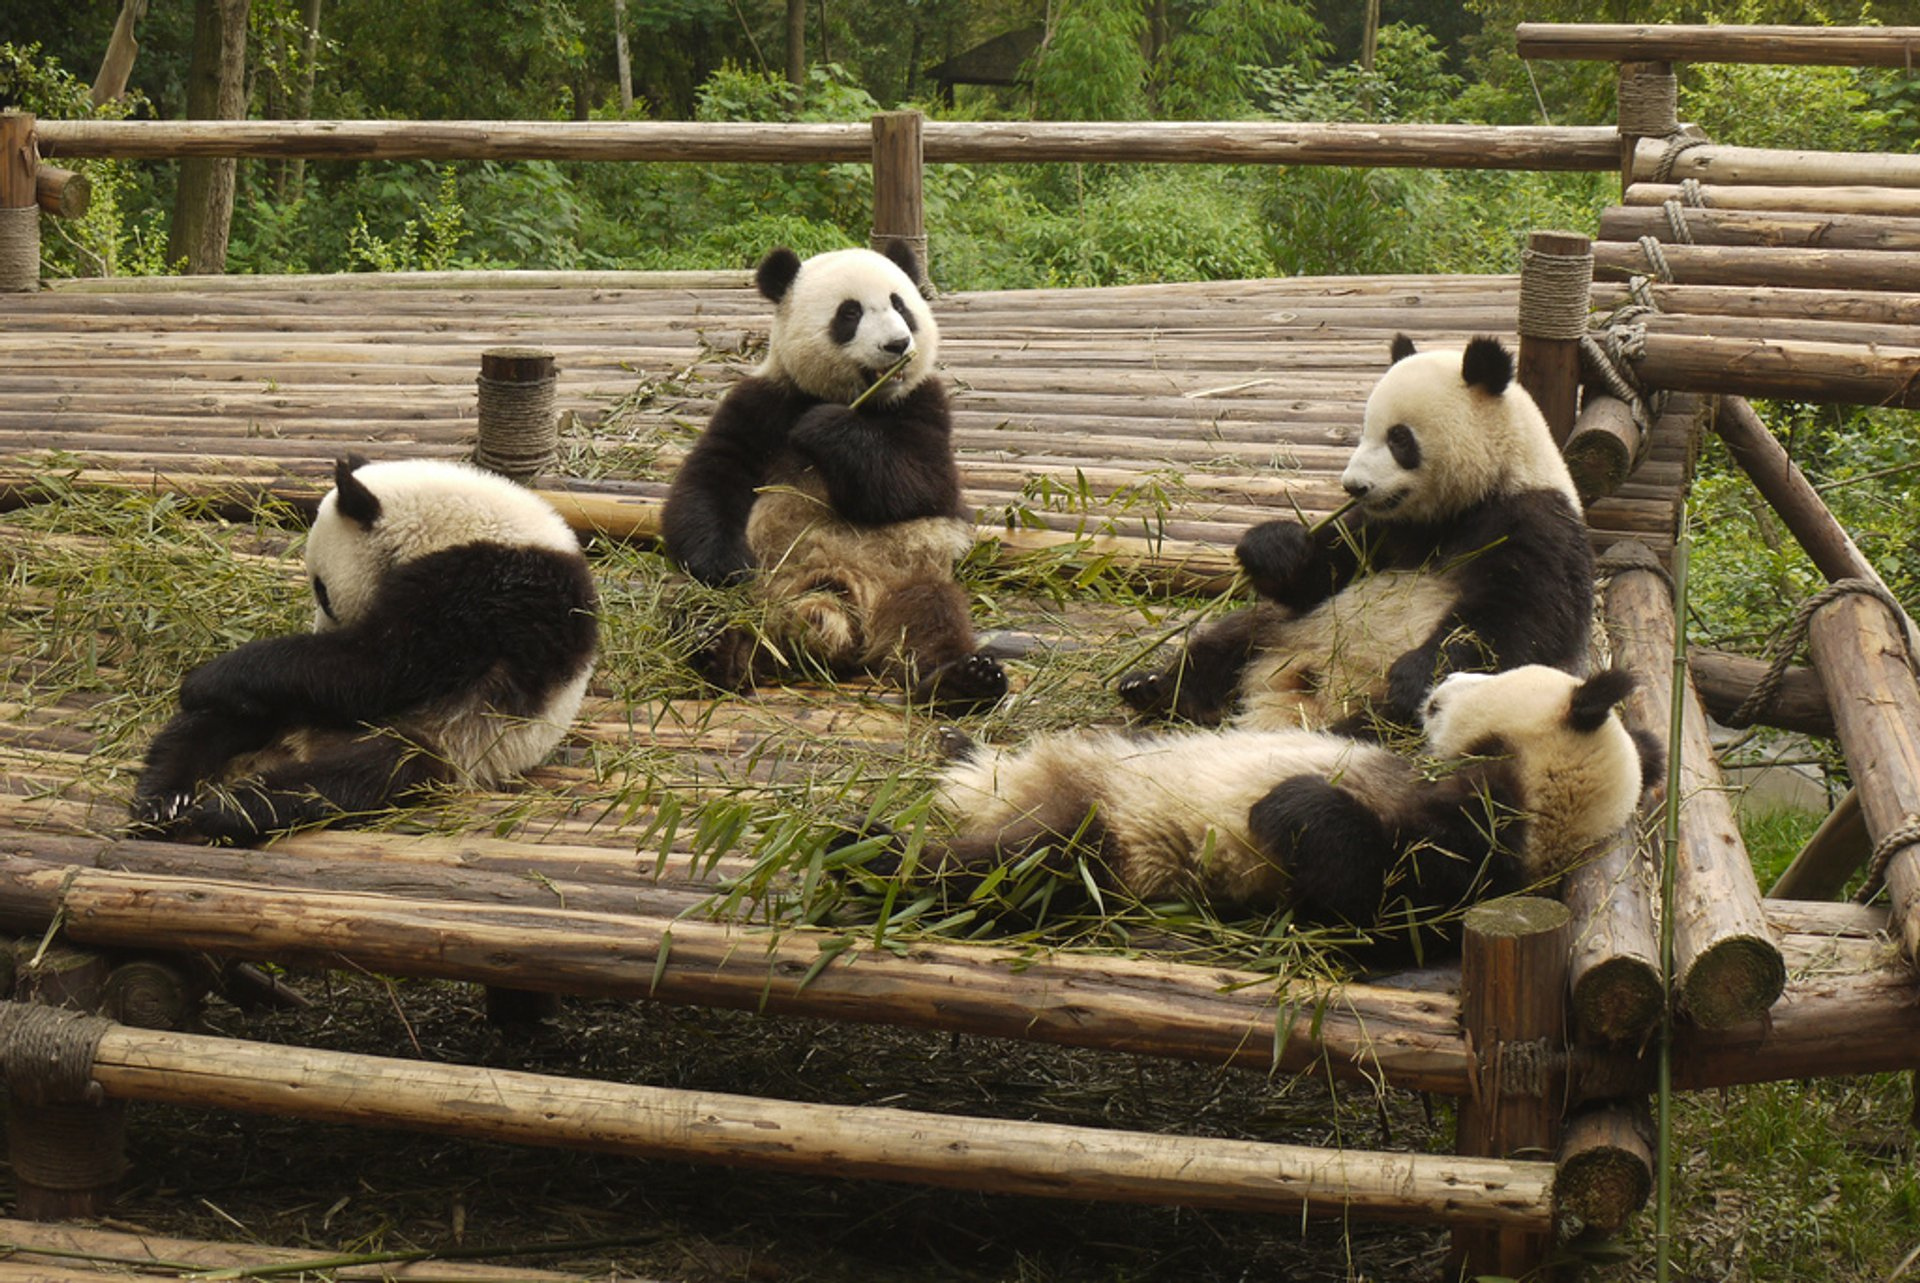 Giant Pandas in China - Best Season 2020